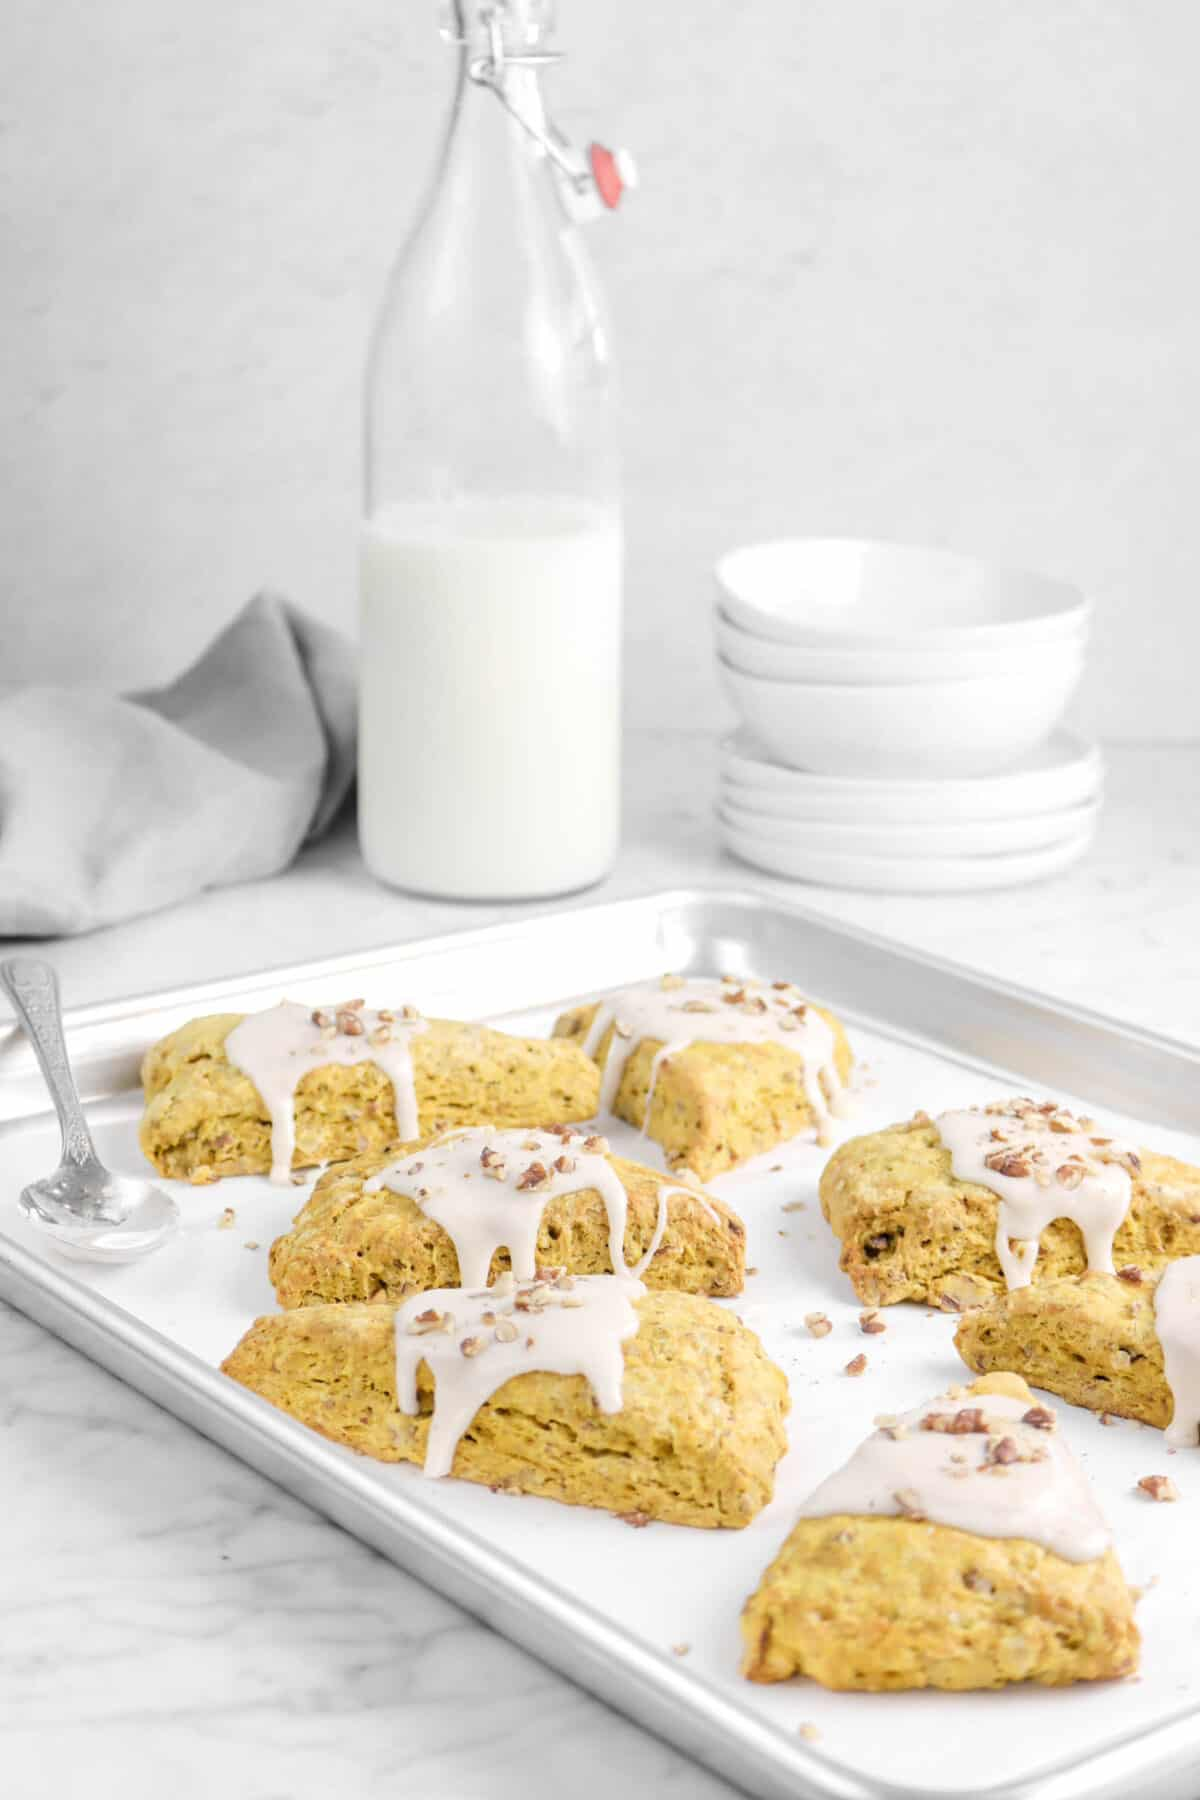 scones on a sheet pan with milk jug, bowls, and plates behind